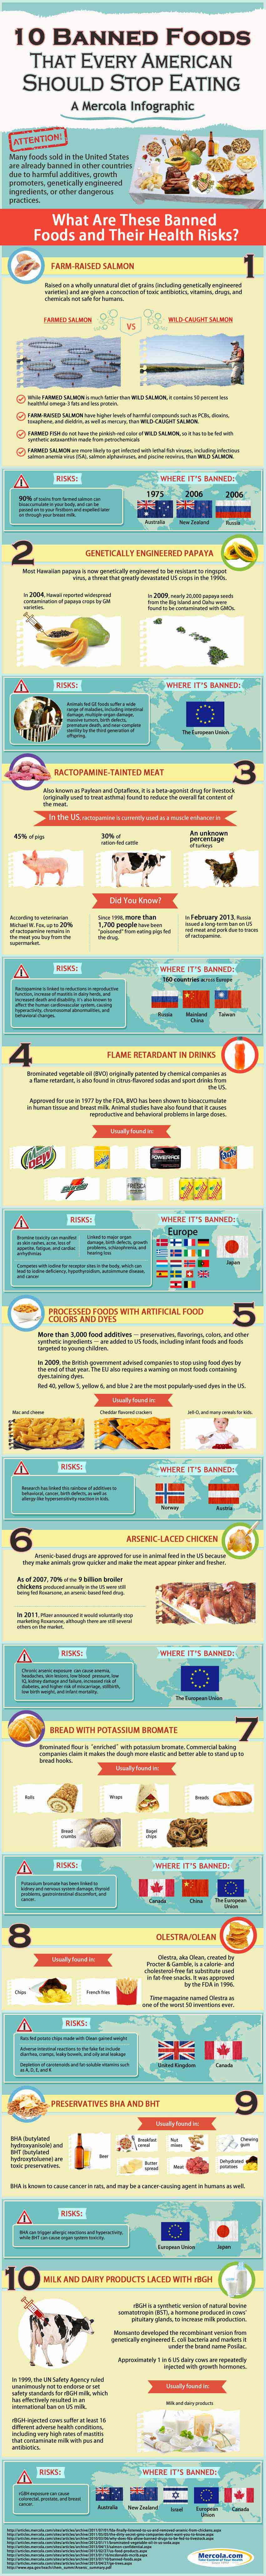 banned-foods-infographic